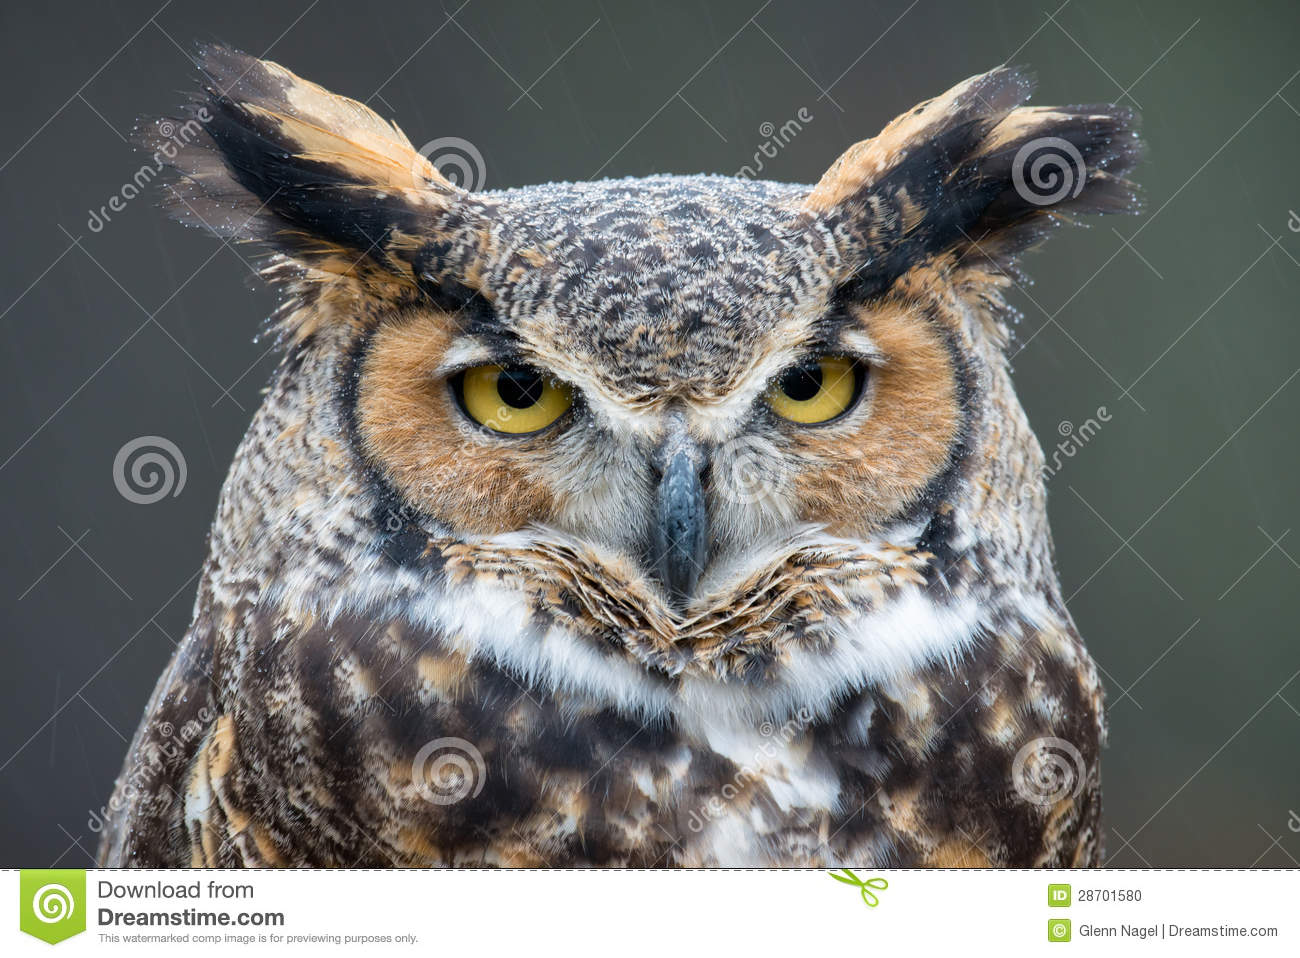 catholic singles in owls head Enjoy significant discounts with owlsheadcom coupon codes 2018 and discount offers get the hottest owl's head coupons at webbyplanetcom.